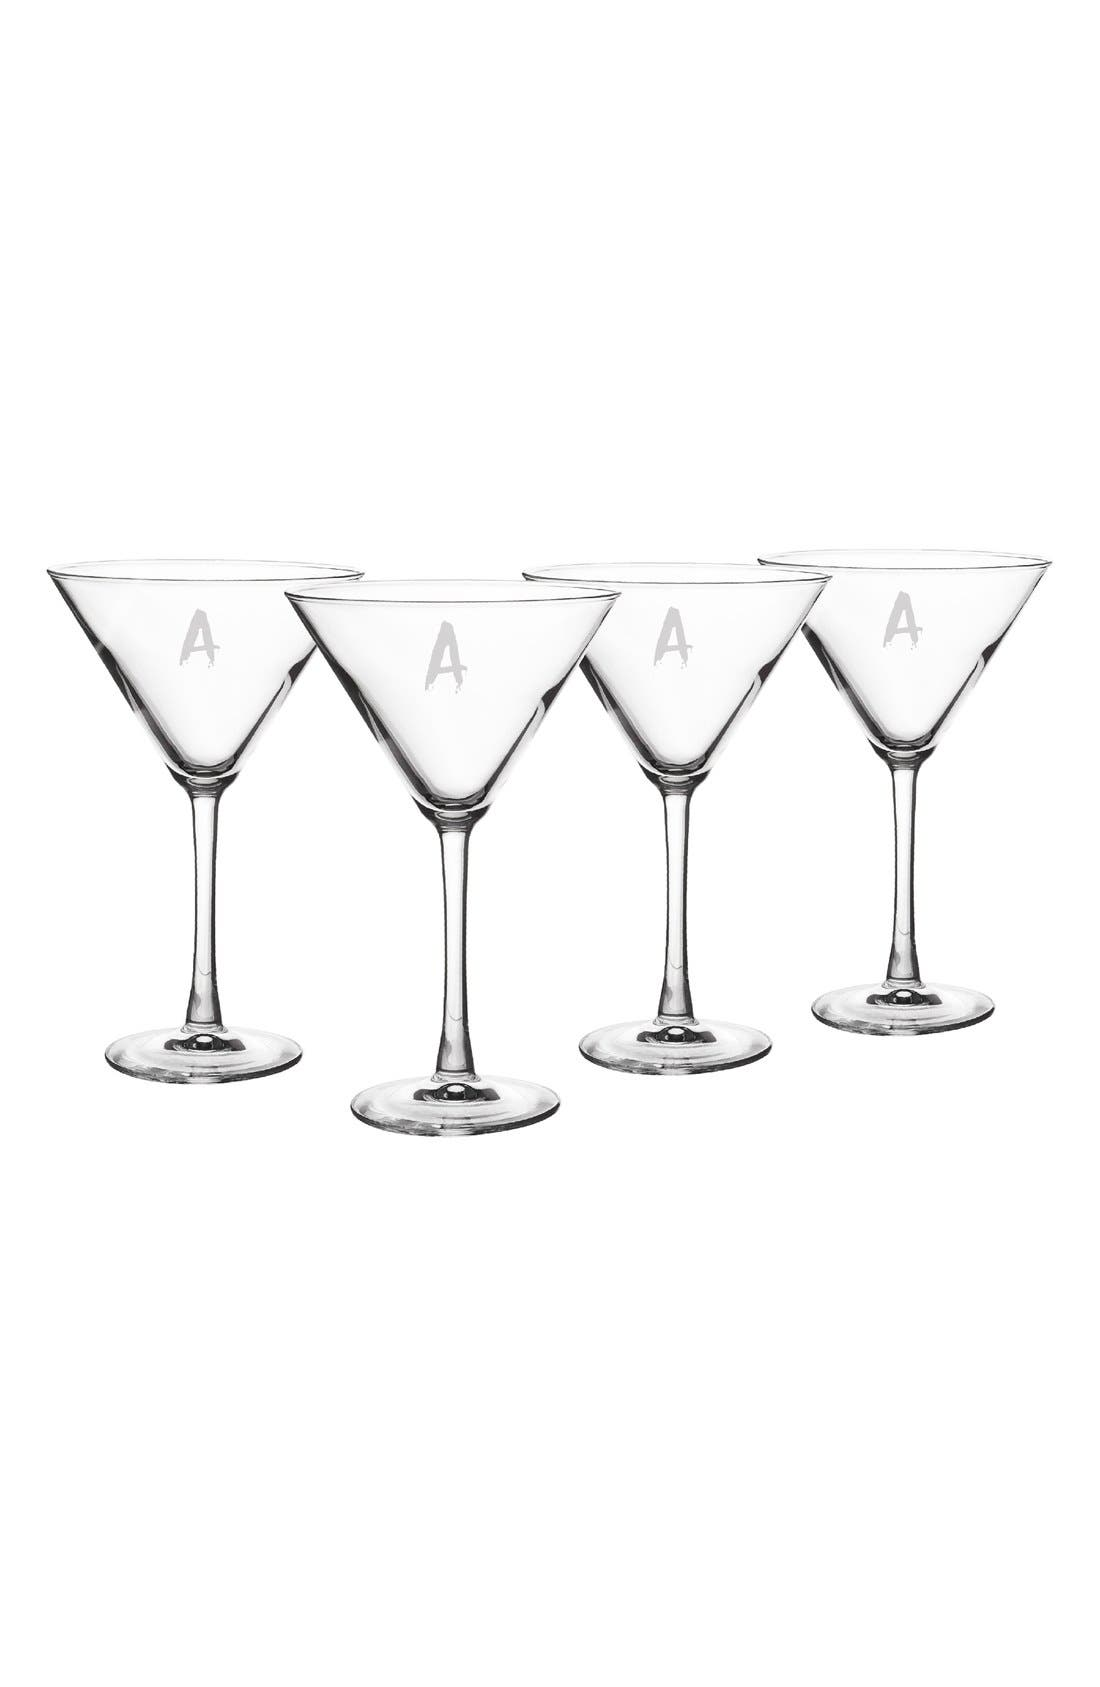 'Spooky' Monogram Martini Glasses,                         Main,                         color, 100